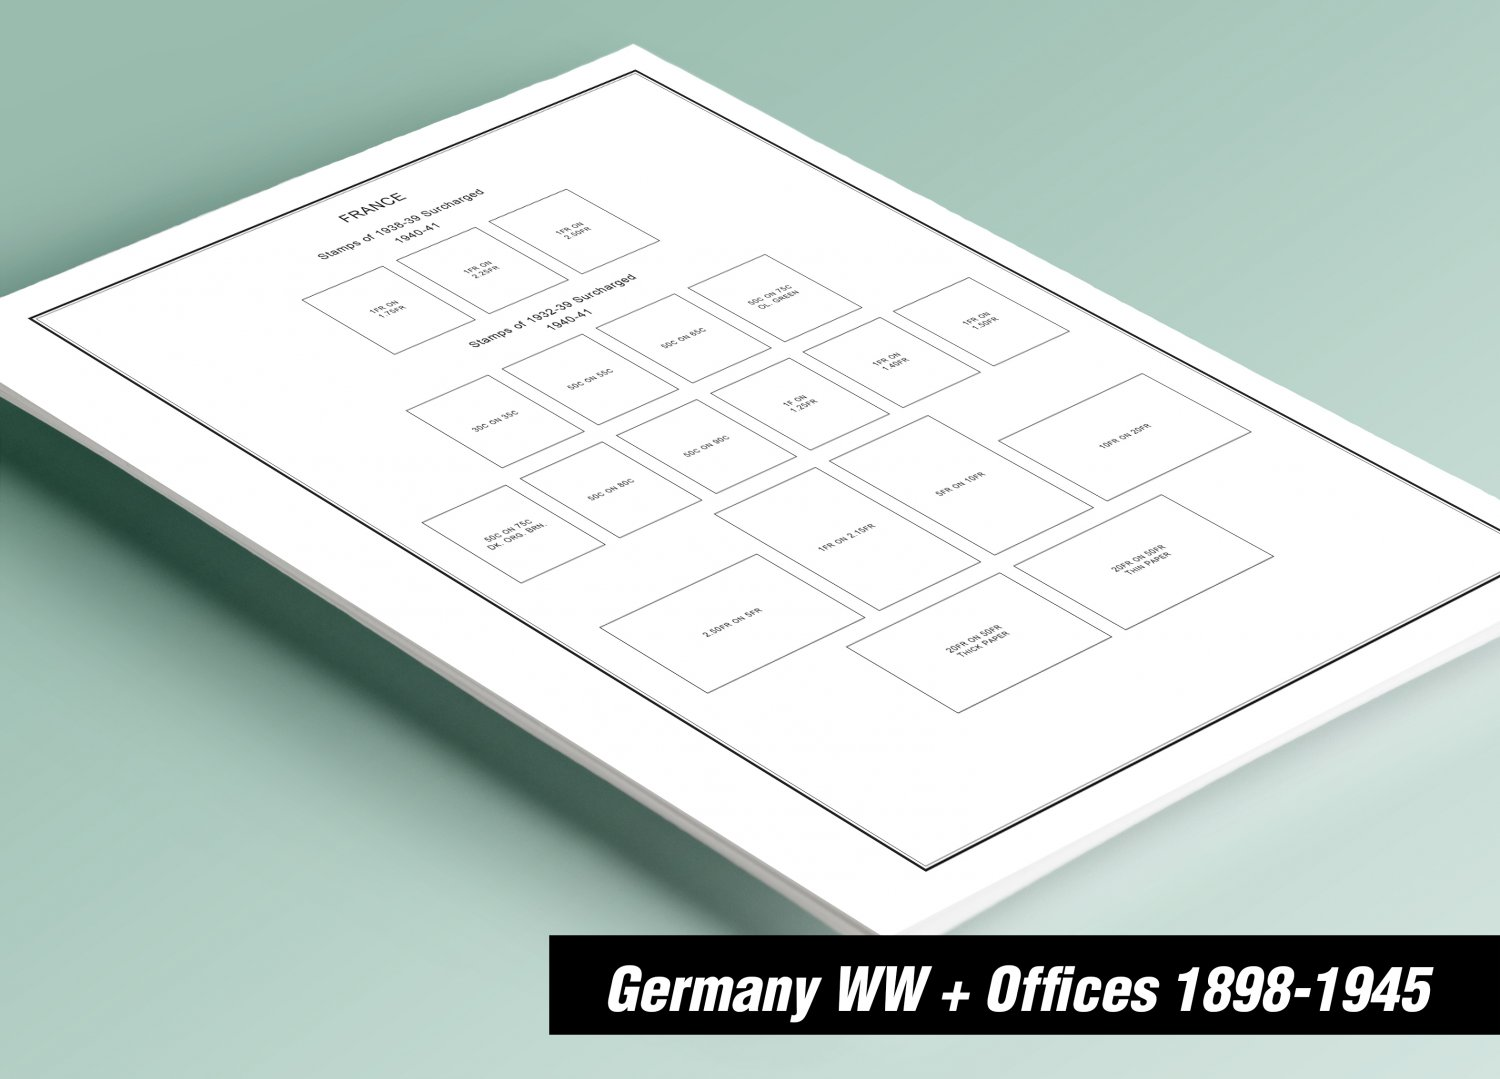 PRINTED GERMANY WW+ OFFICES 1898-1945 STAMP ALBUM PAGES (91 pages)